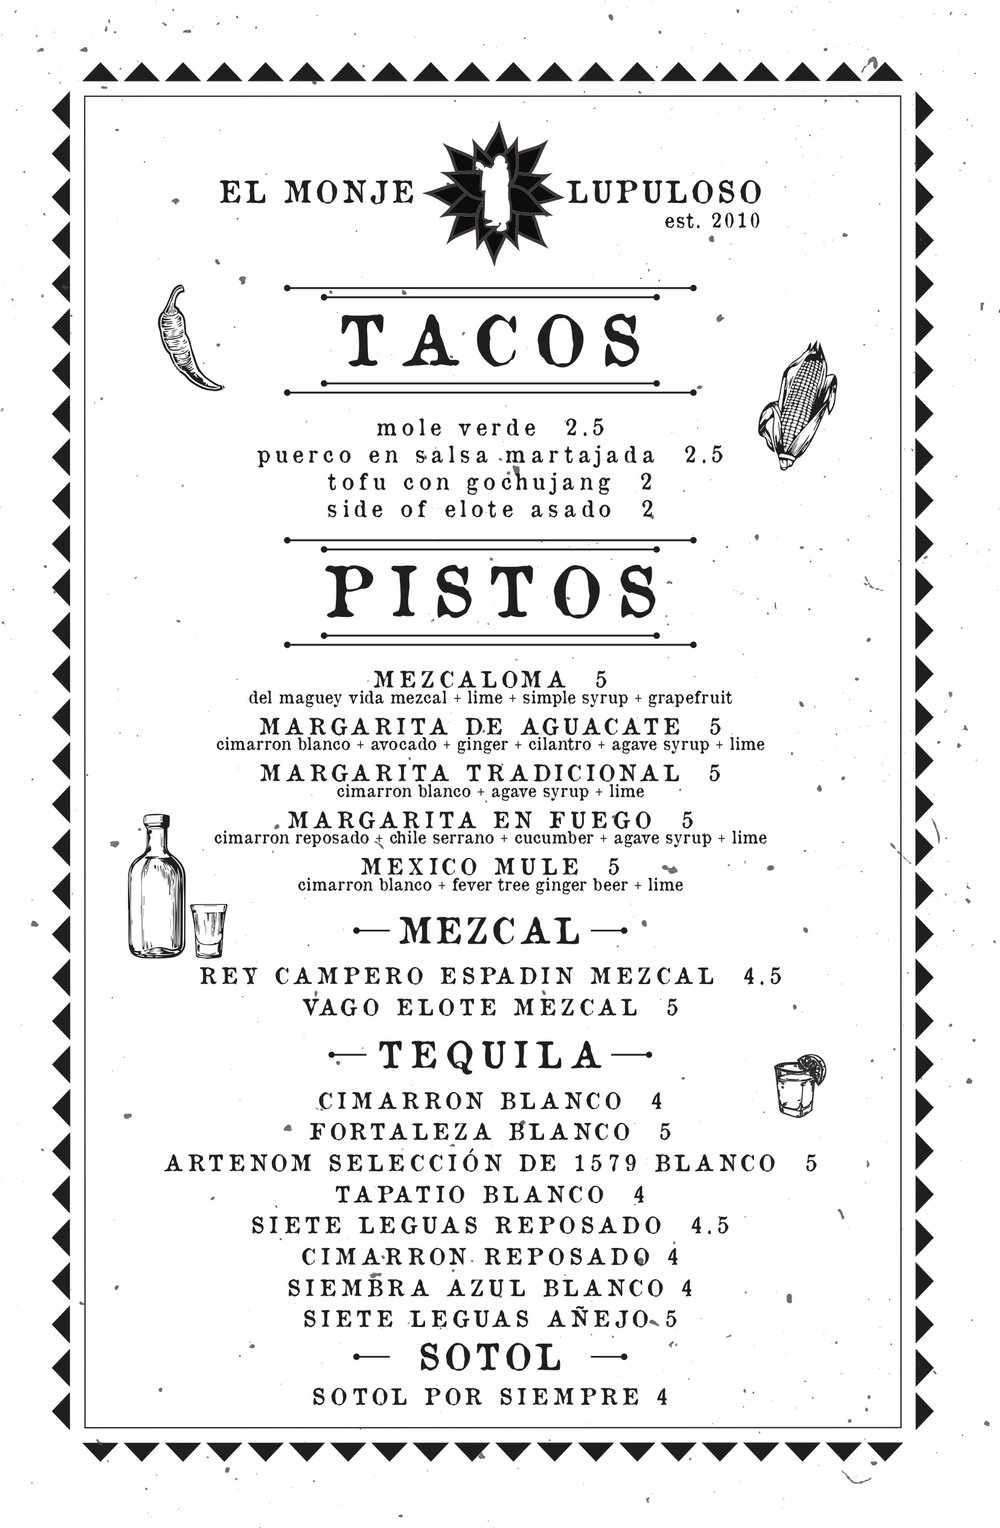 Tacos, Margaritas and Tequila Specials on Tuesdays! Yes please!